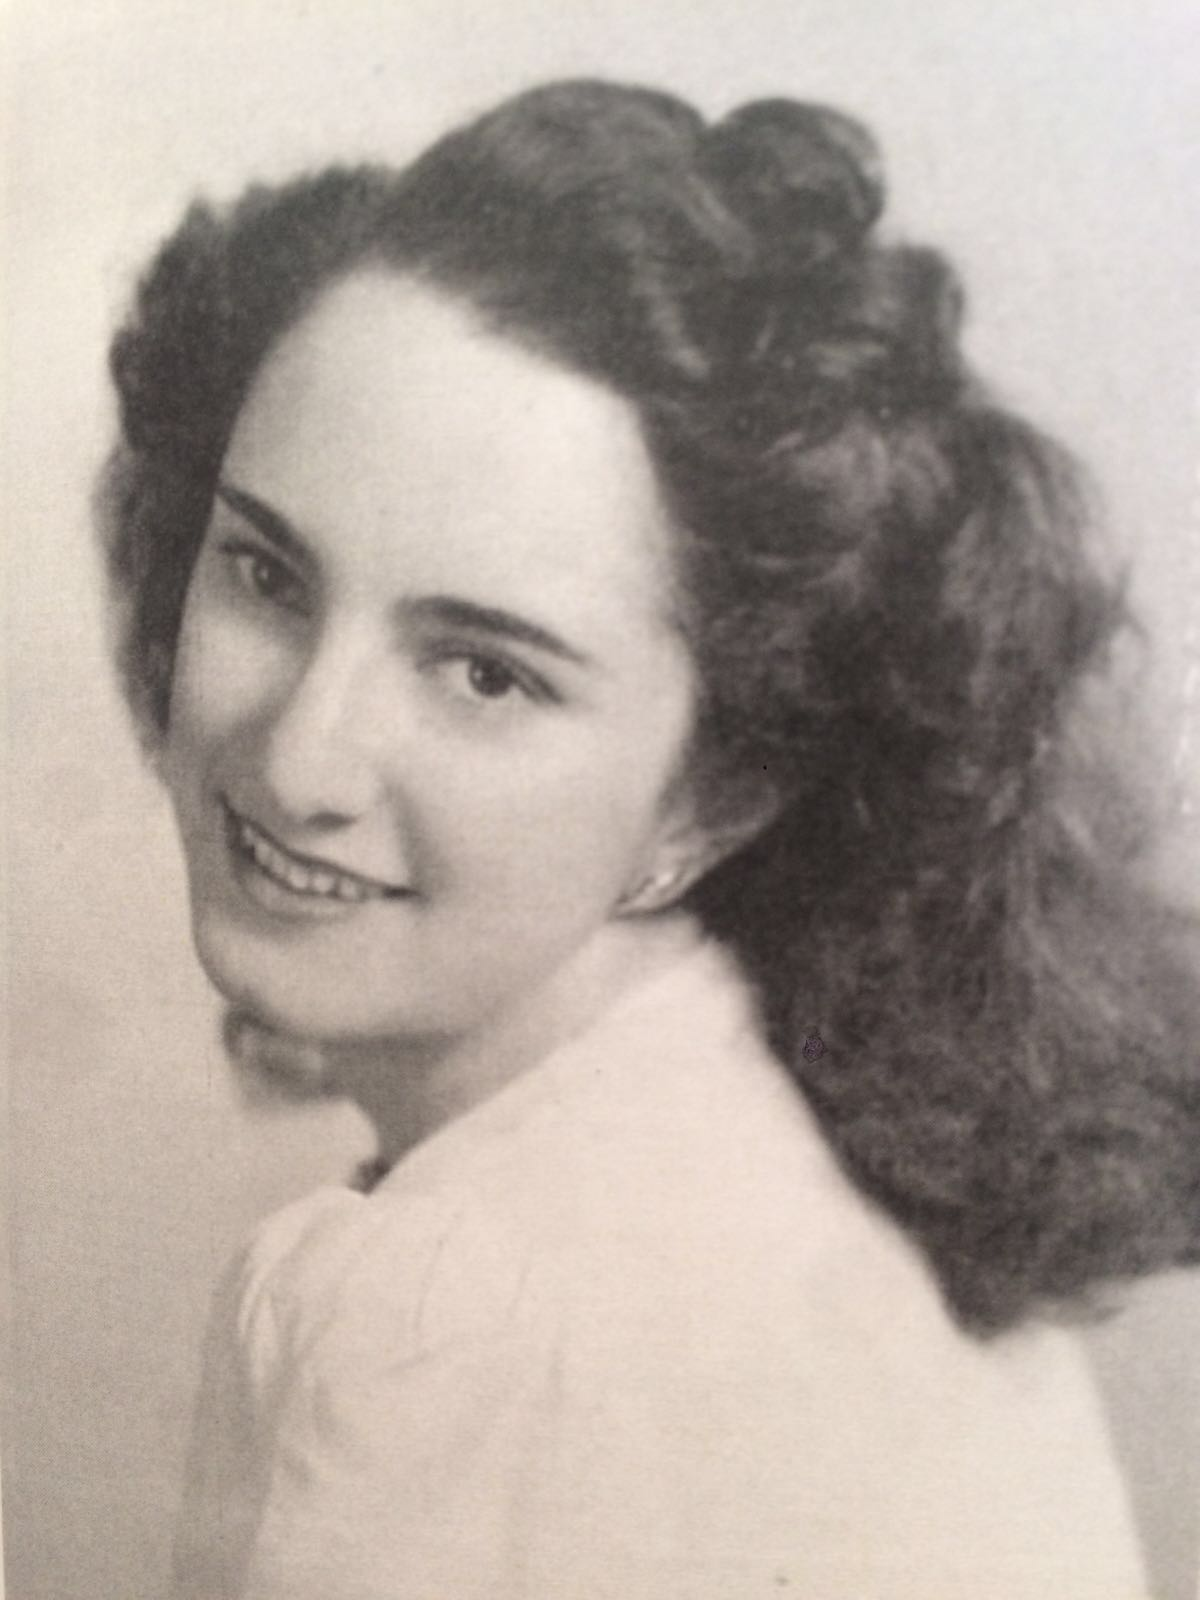 My grandmother, Zena, died at age 39 from breast cancer as a BRCA gene carrier